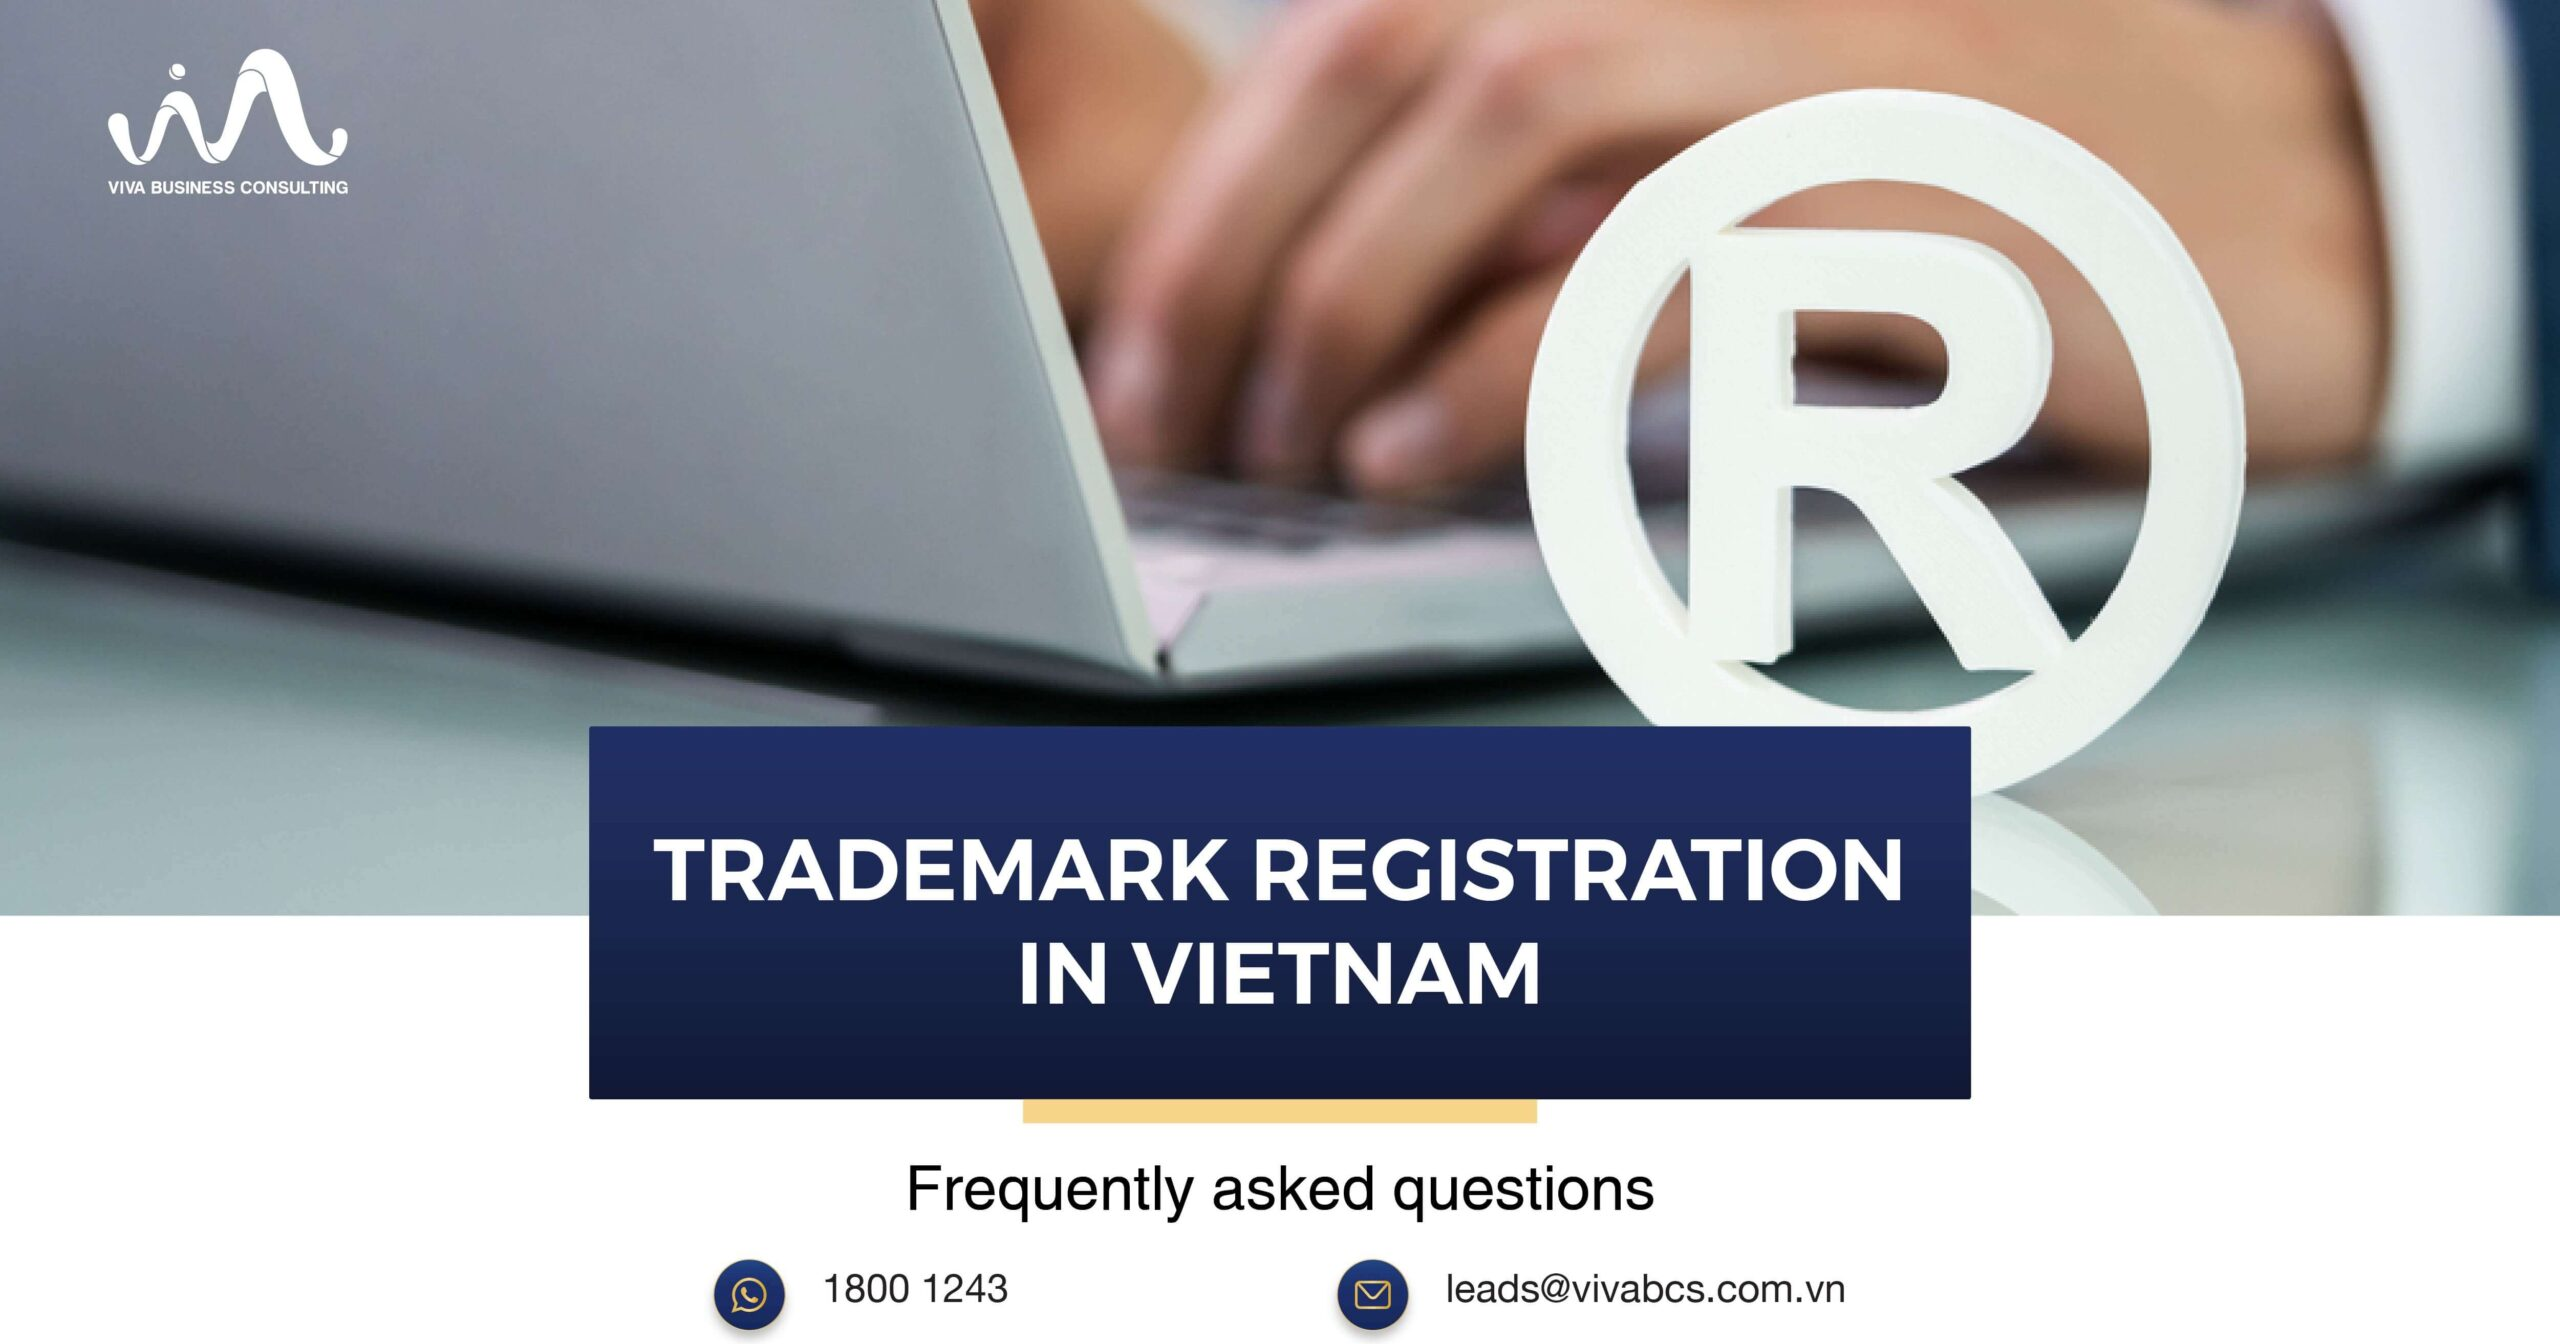 Trademark protection in Vietnam